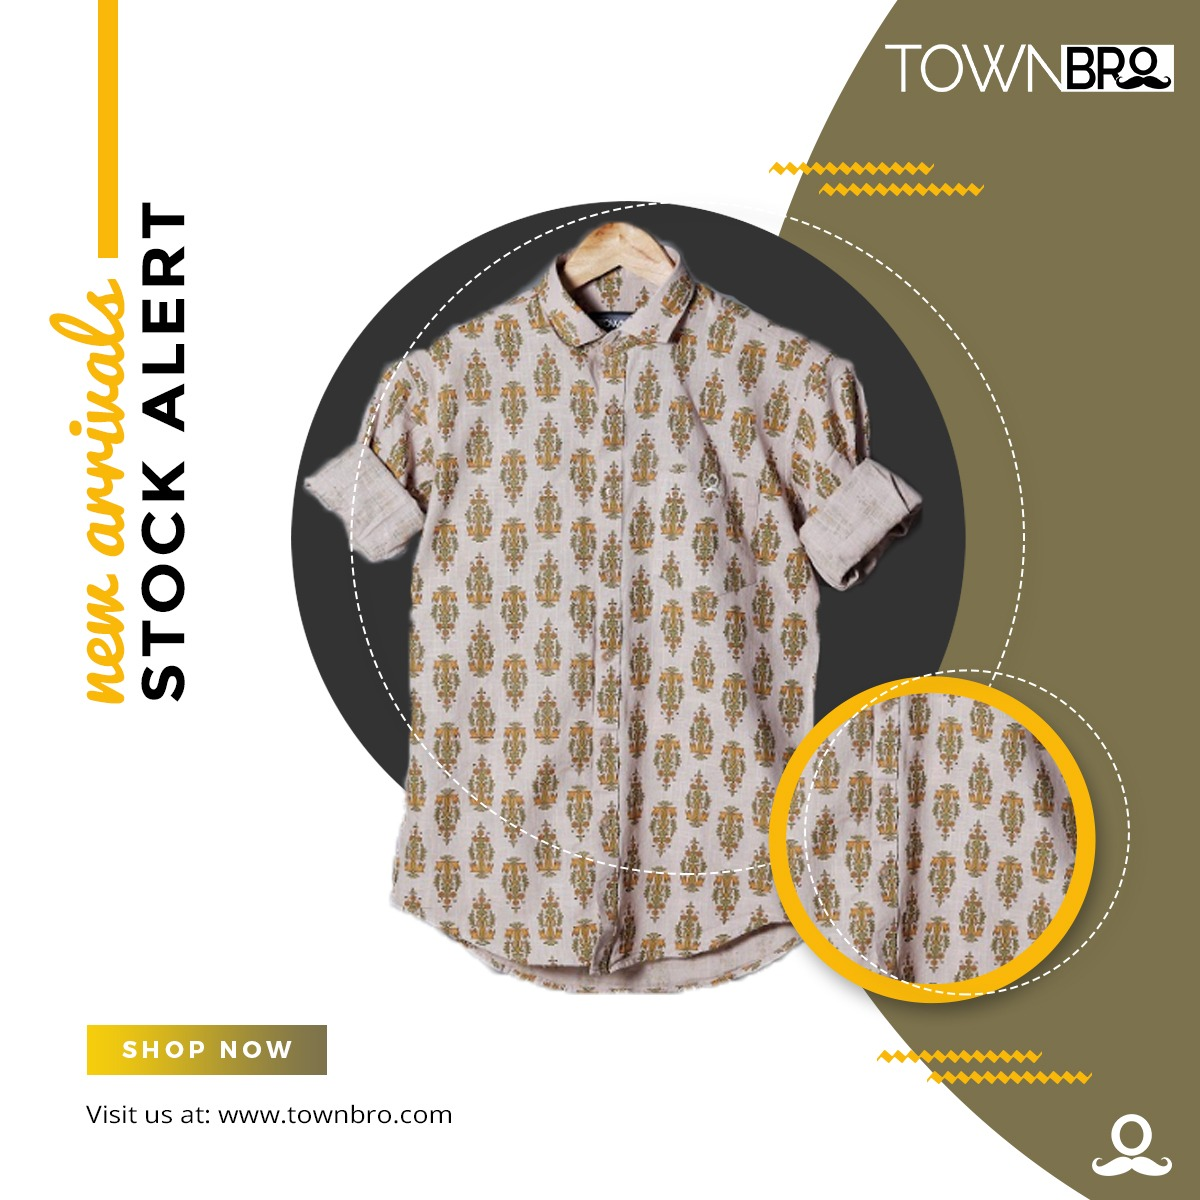 #NewStockAlert You don't need to be a rocket scientist to understand how exciting this vibrant shirt is! Shop this at: http://bit.ly/townbro223  #printedshirts #newstockalert #stockalert #mensfashion #indianfashion #townbro #trendingnow #GetTheLook #Instastyle #streetstyle #shirtspic.twitter.com/XmCgWZelC3